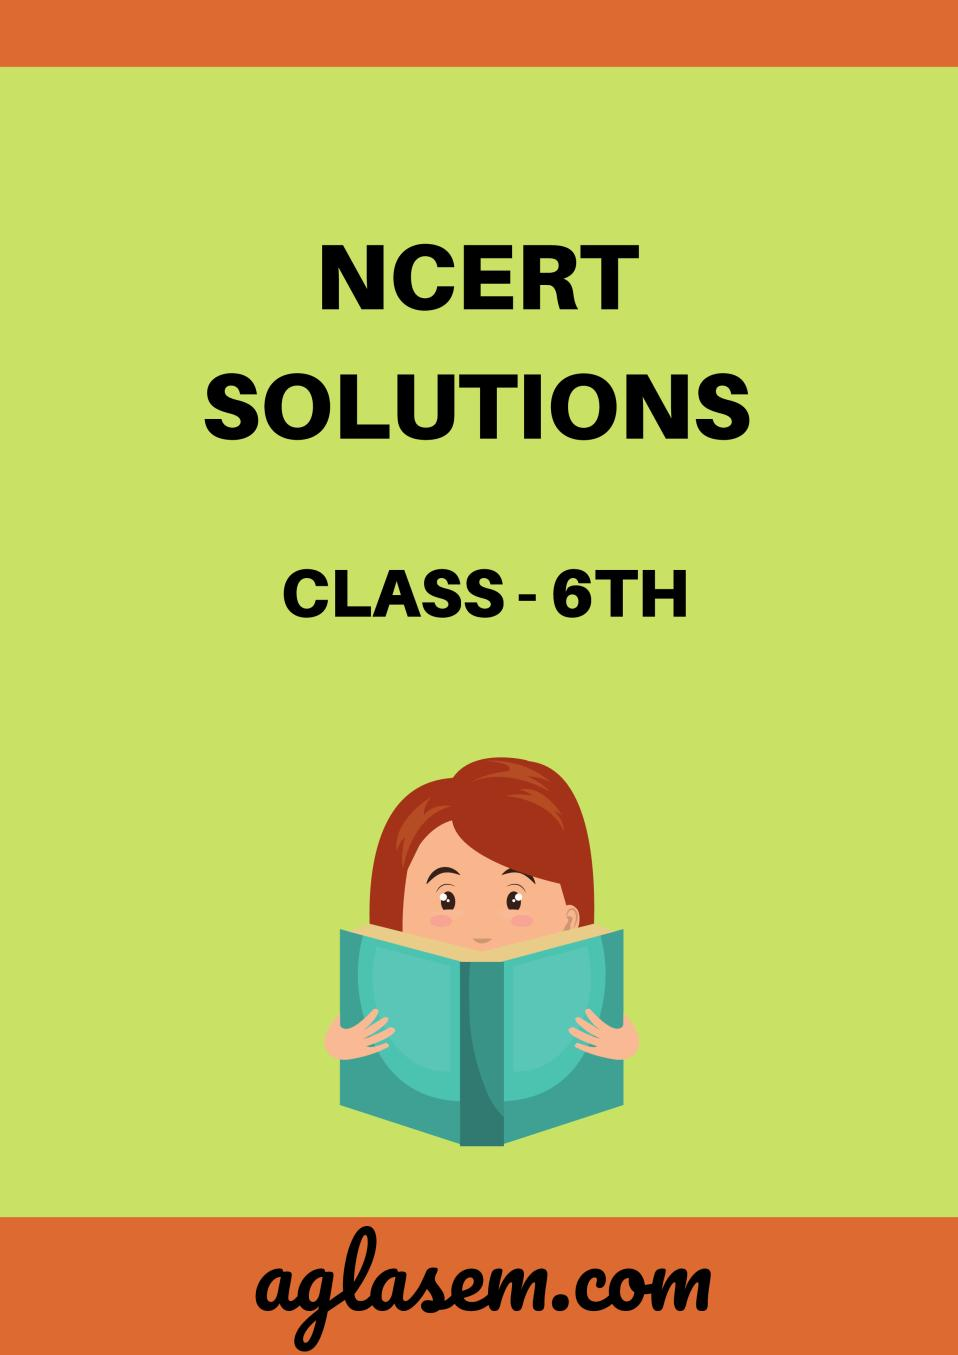 NCERT Solutions Class 6 English (A Pact with the Sun) Chapter 5 Tansen